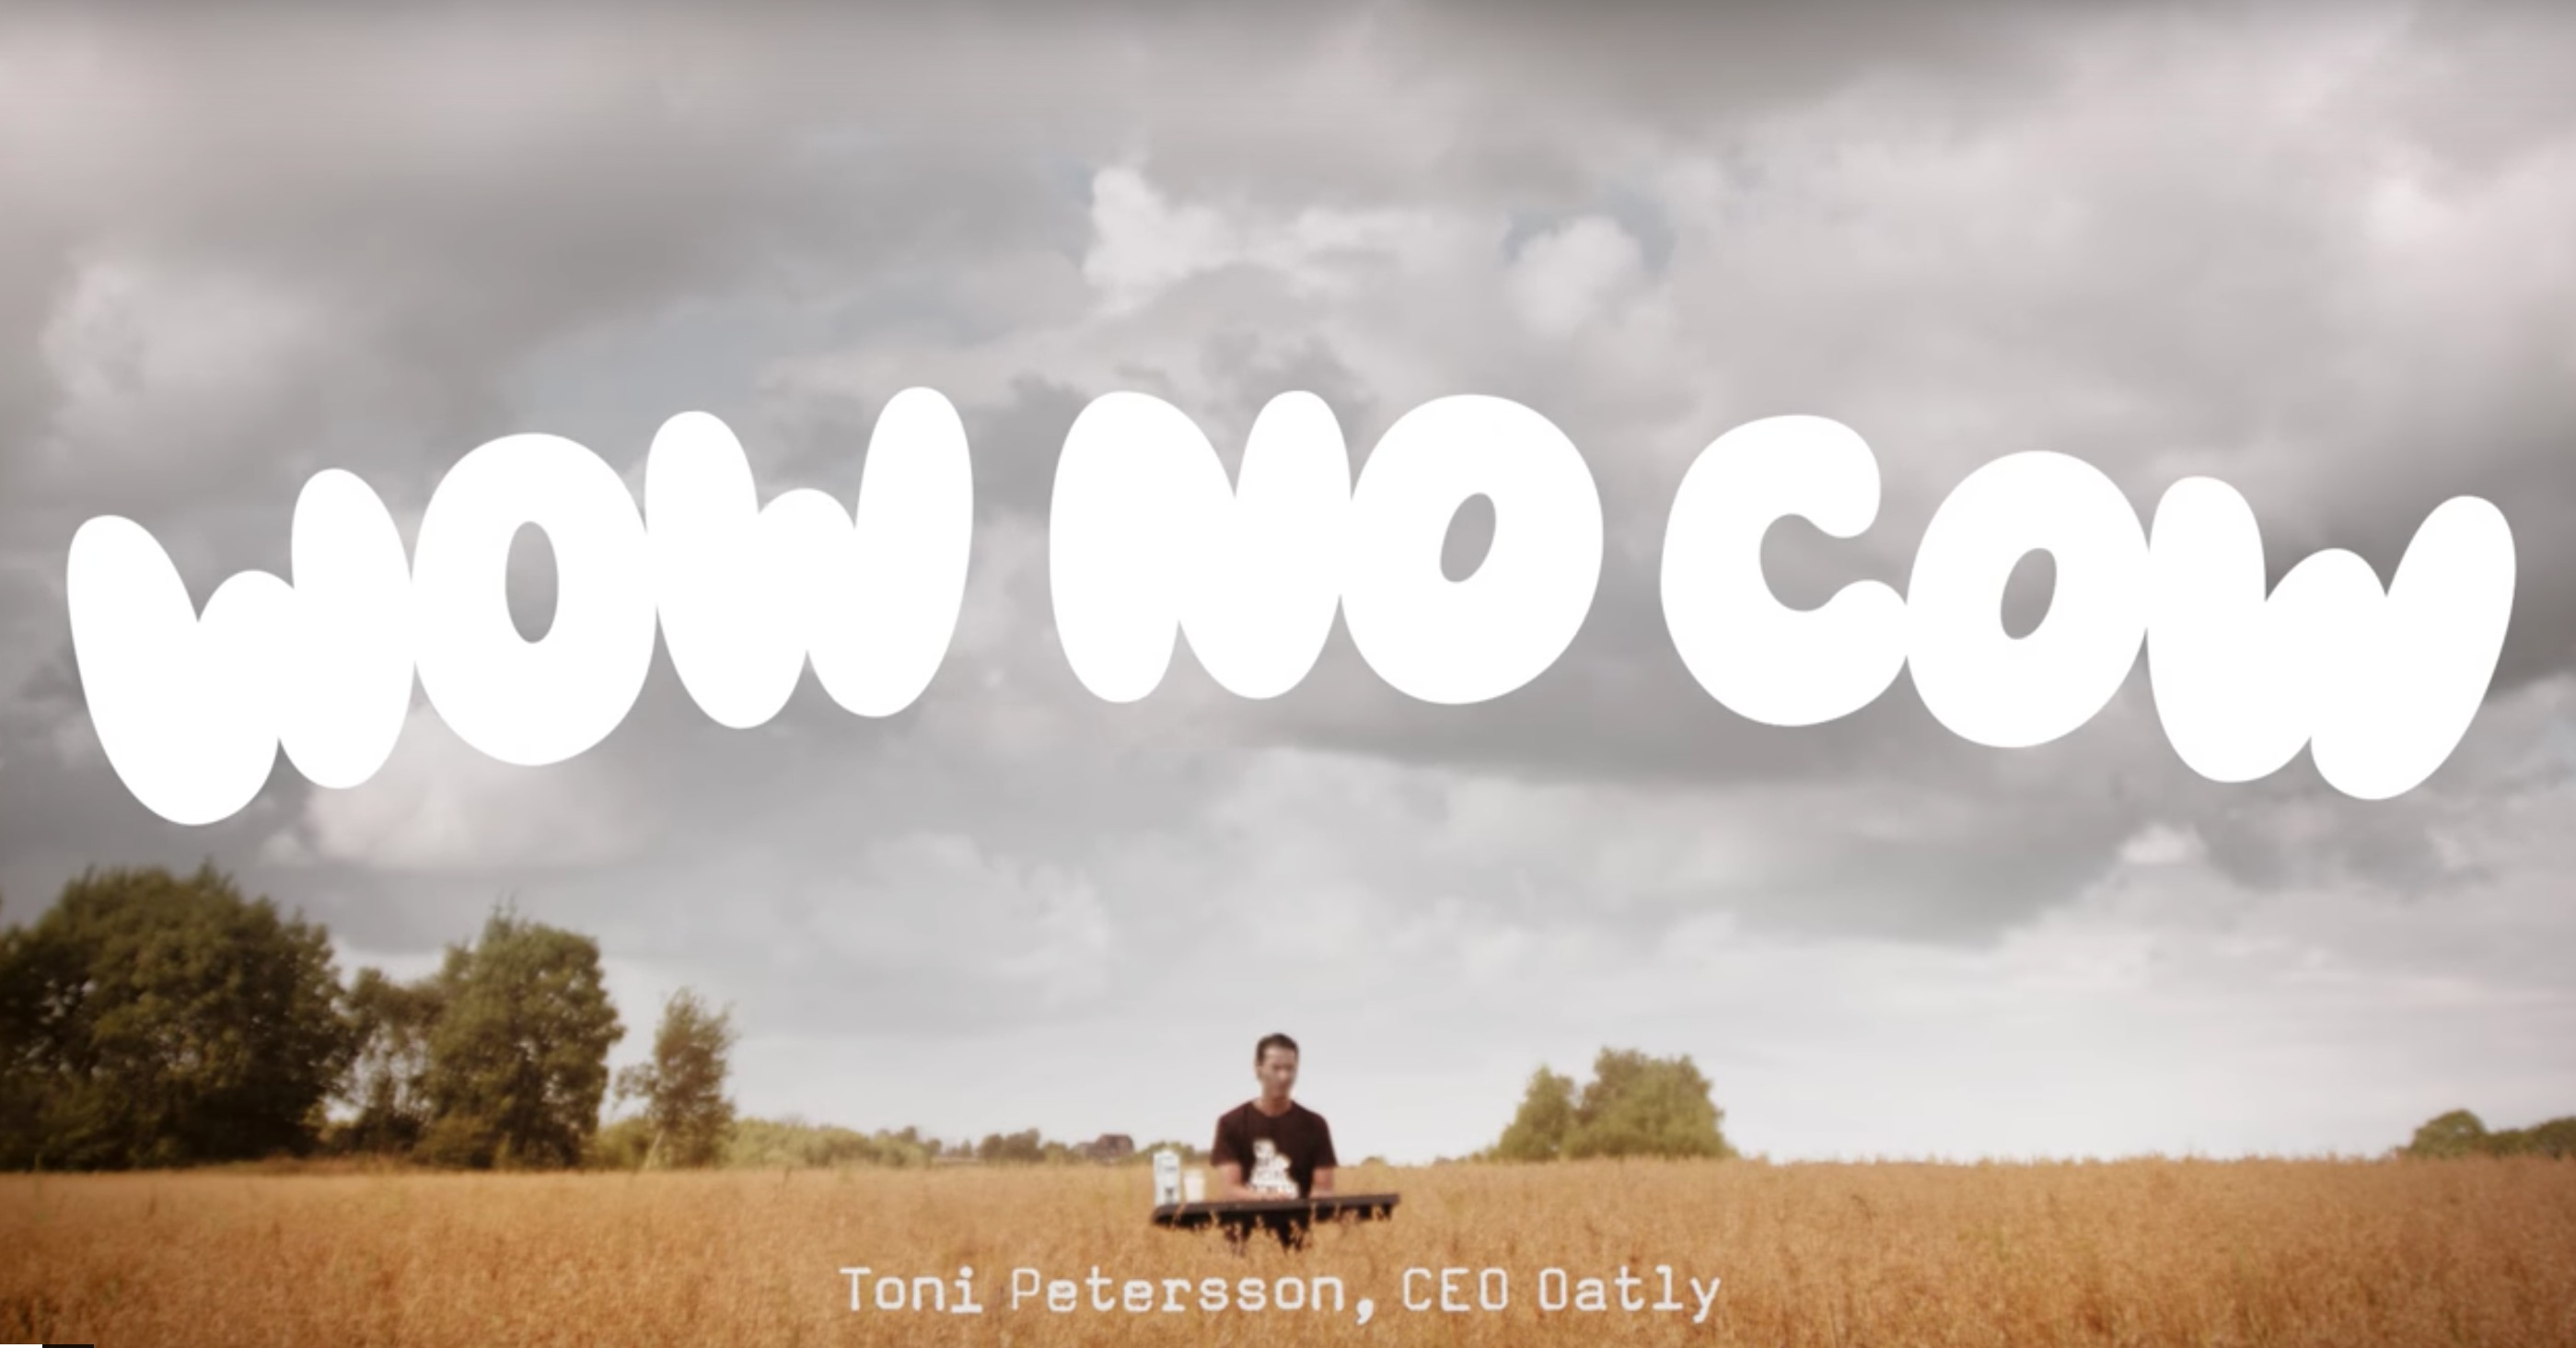 Vegan Oatly television advert